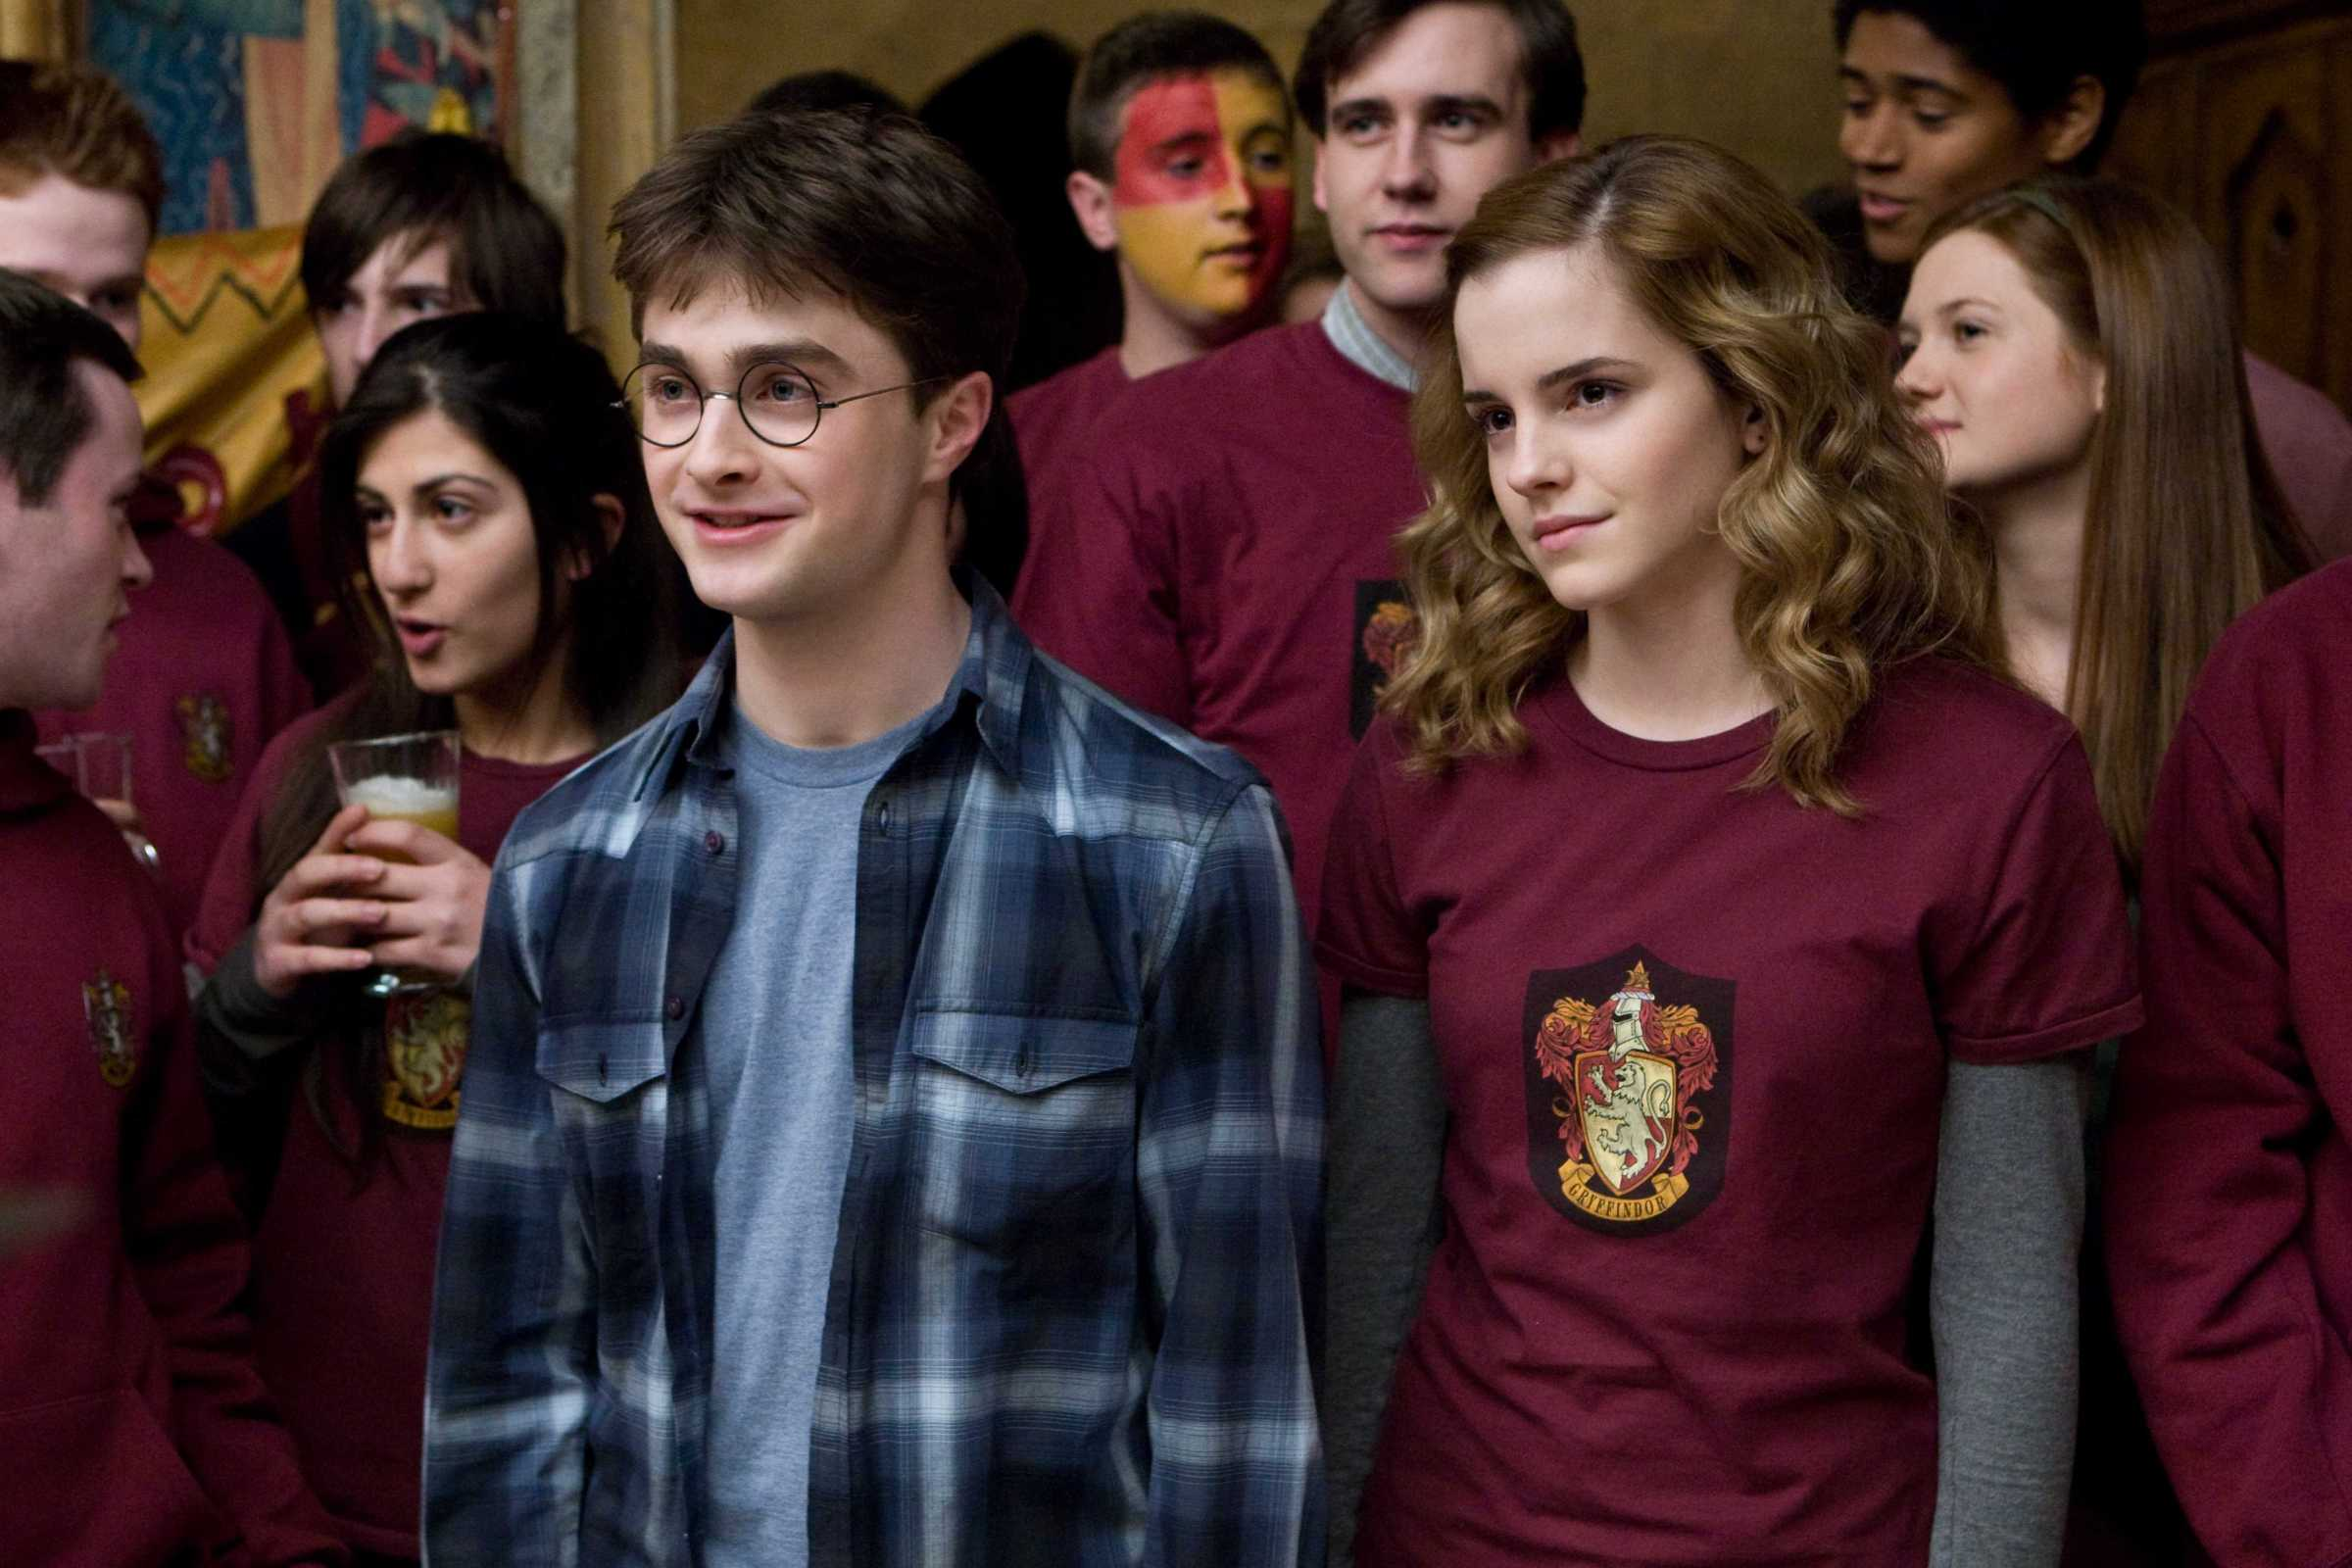 Harry potter and the half – blood prince movie photo gallery